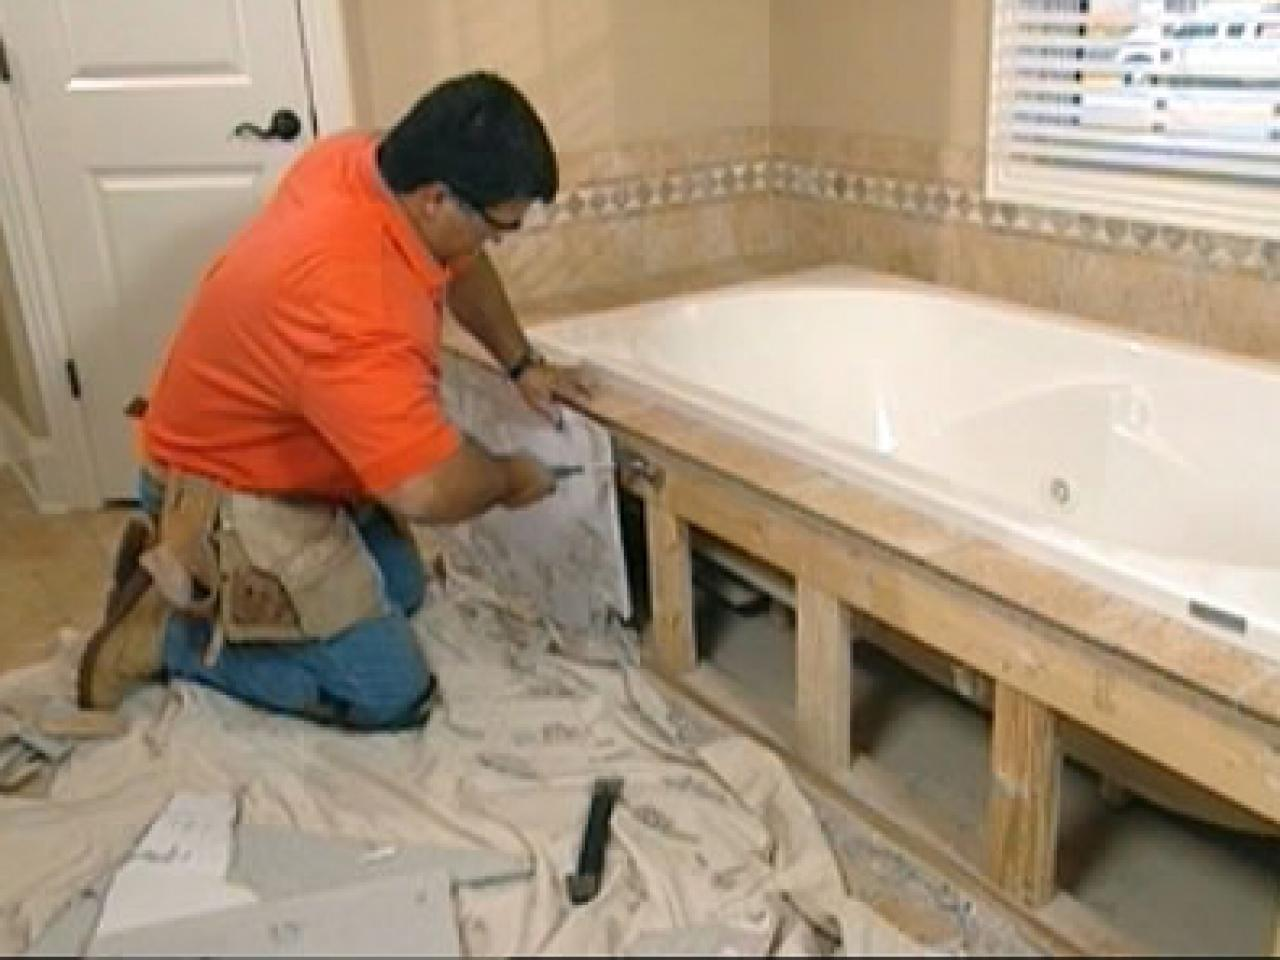 Claw Foot Tub Installation: Surround Demolition | how-tos | DIY